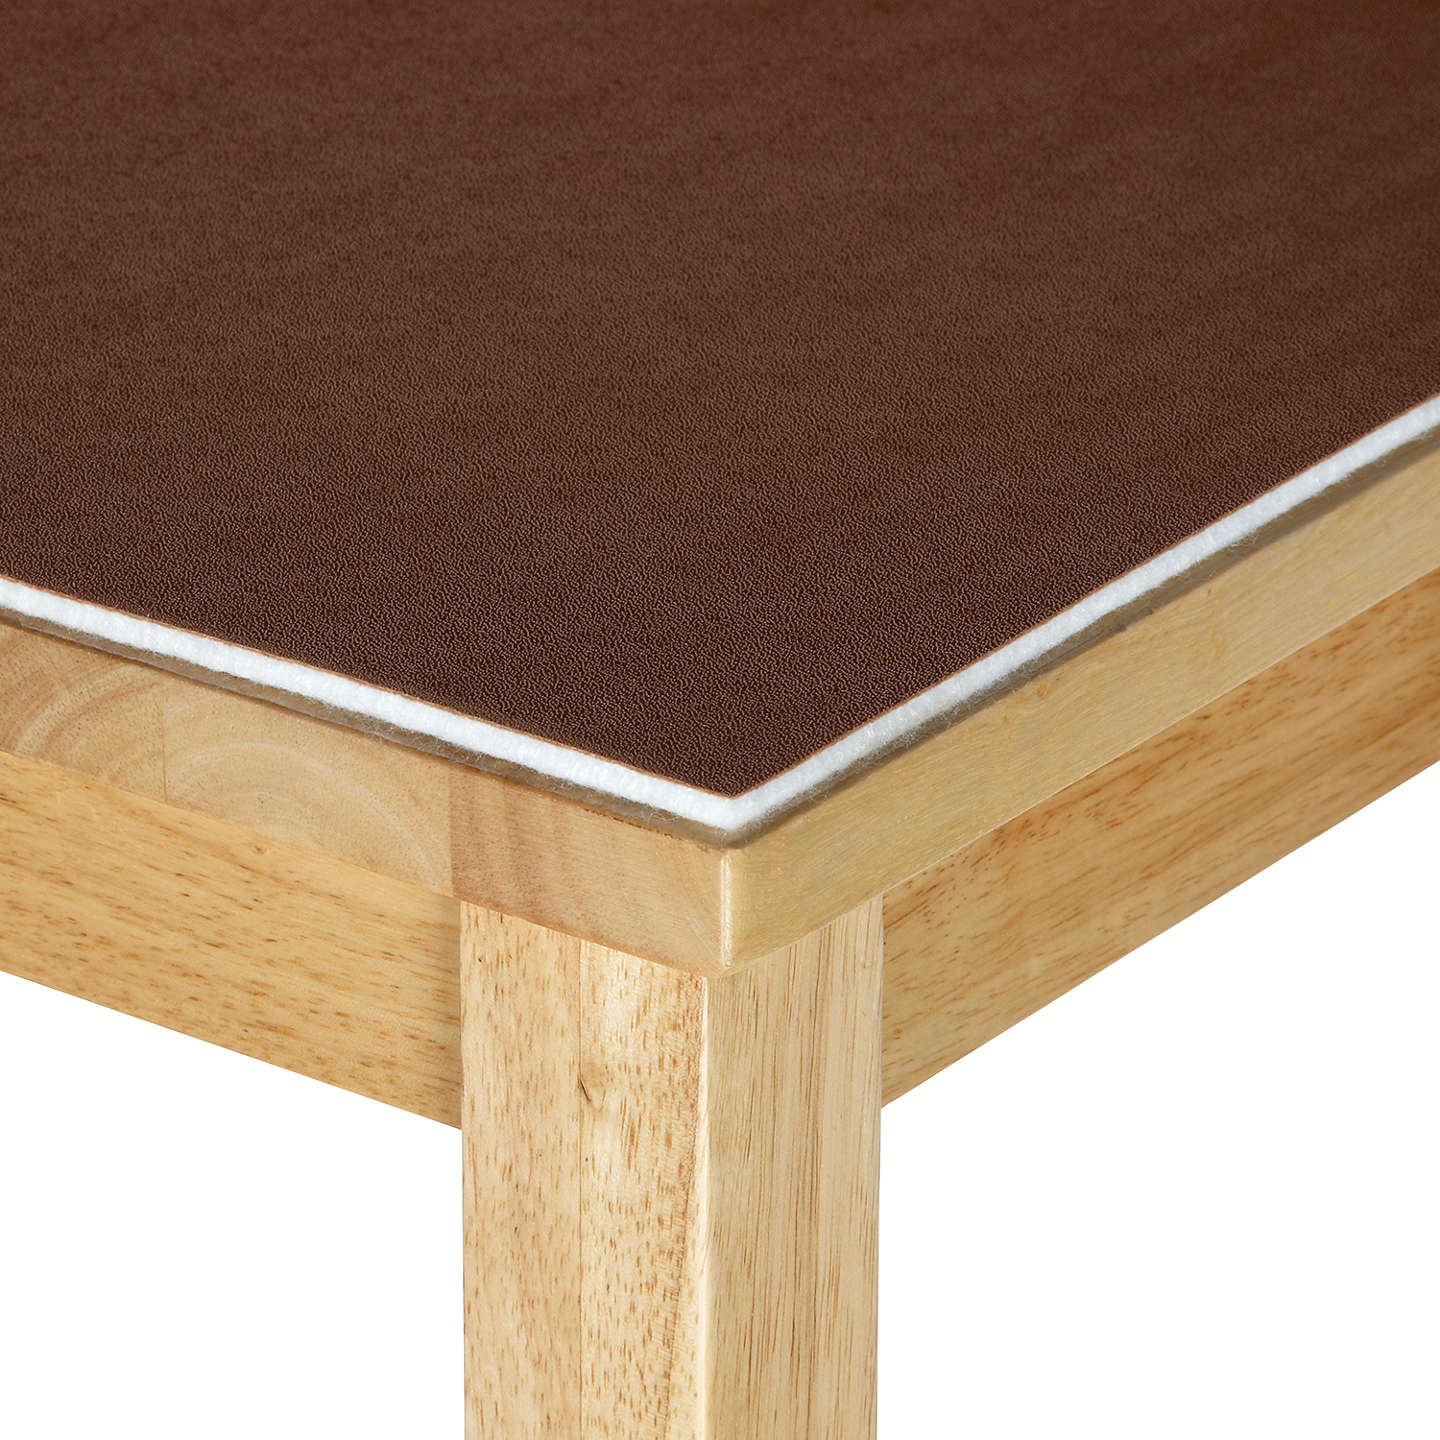 BuyJohn Lewis Table Protector Fabric, Nutmeg, W100cm, L10m Online at johnlewis.com